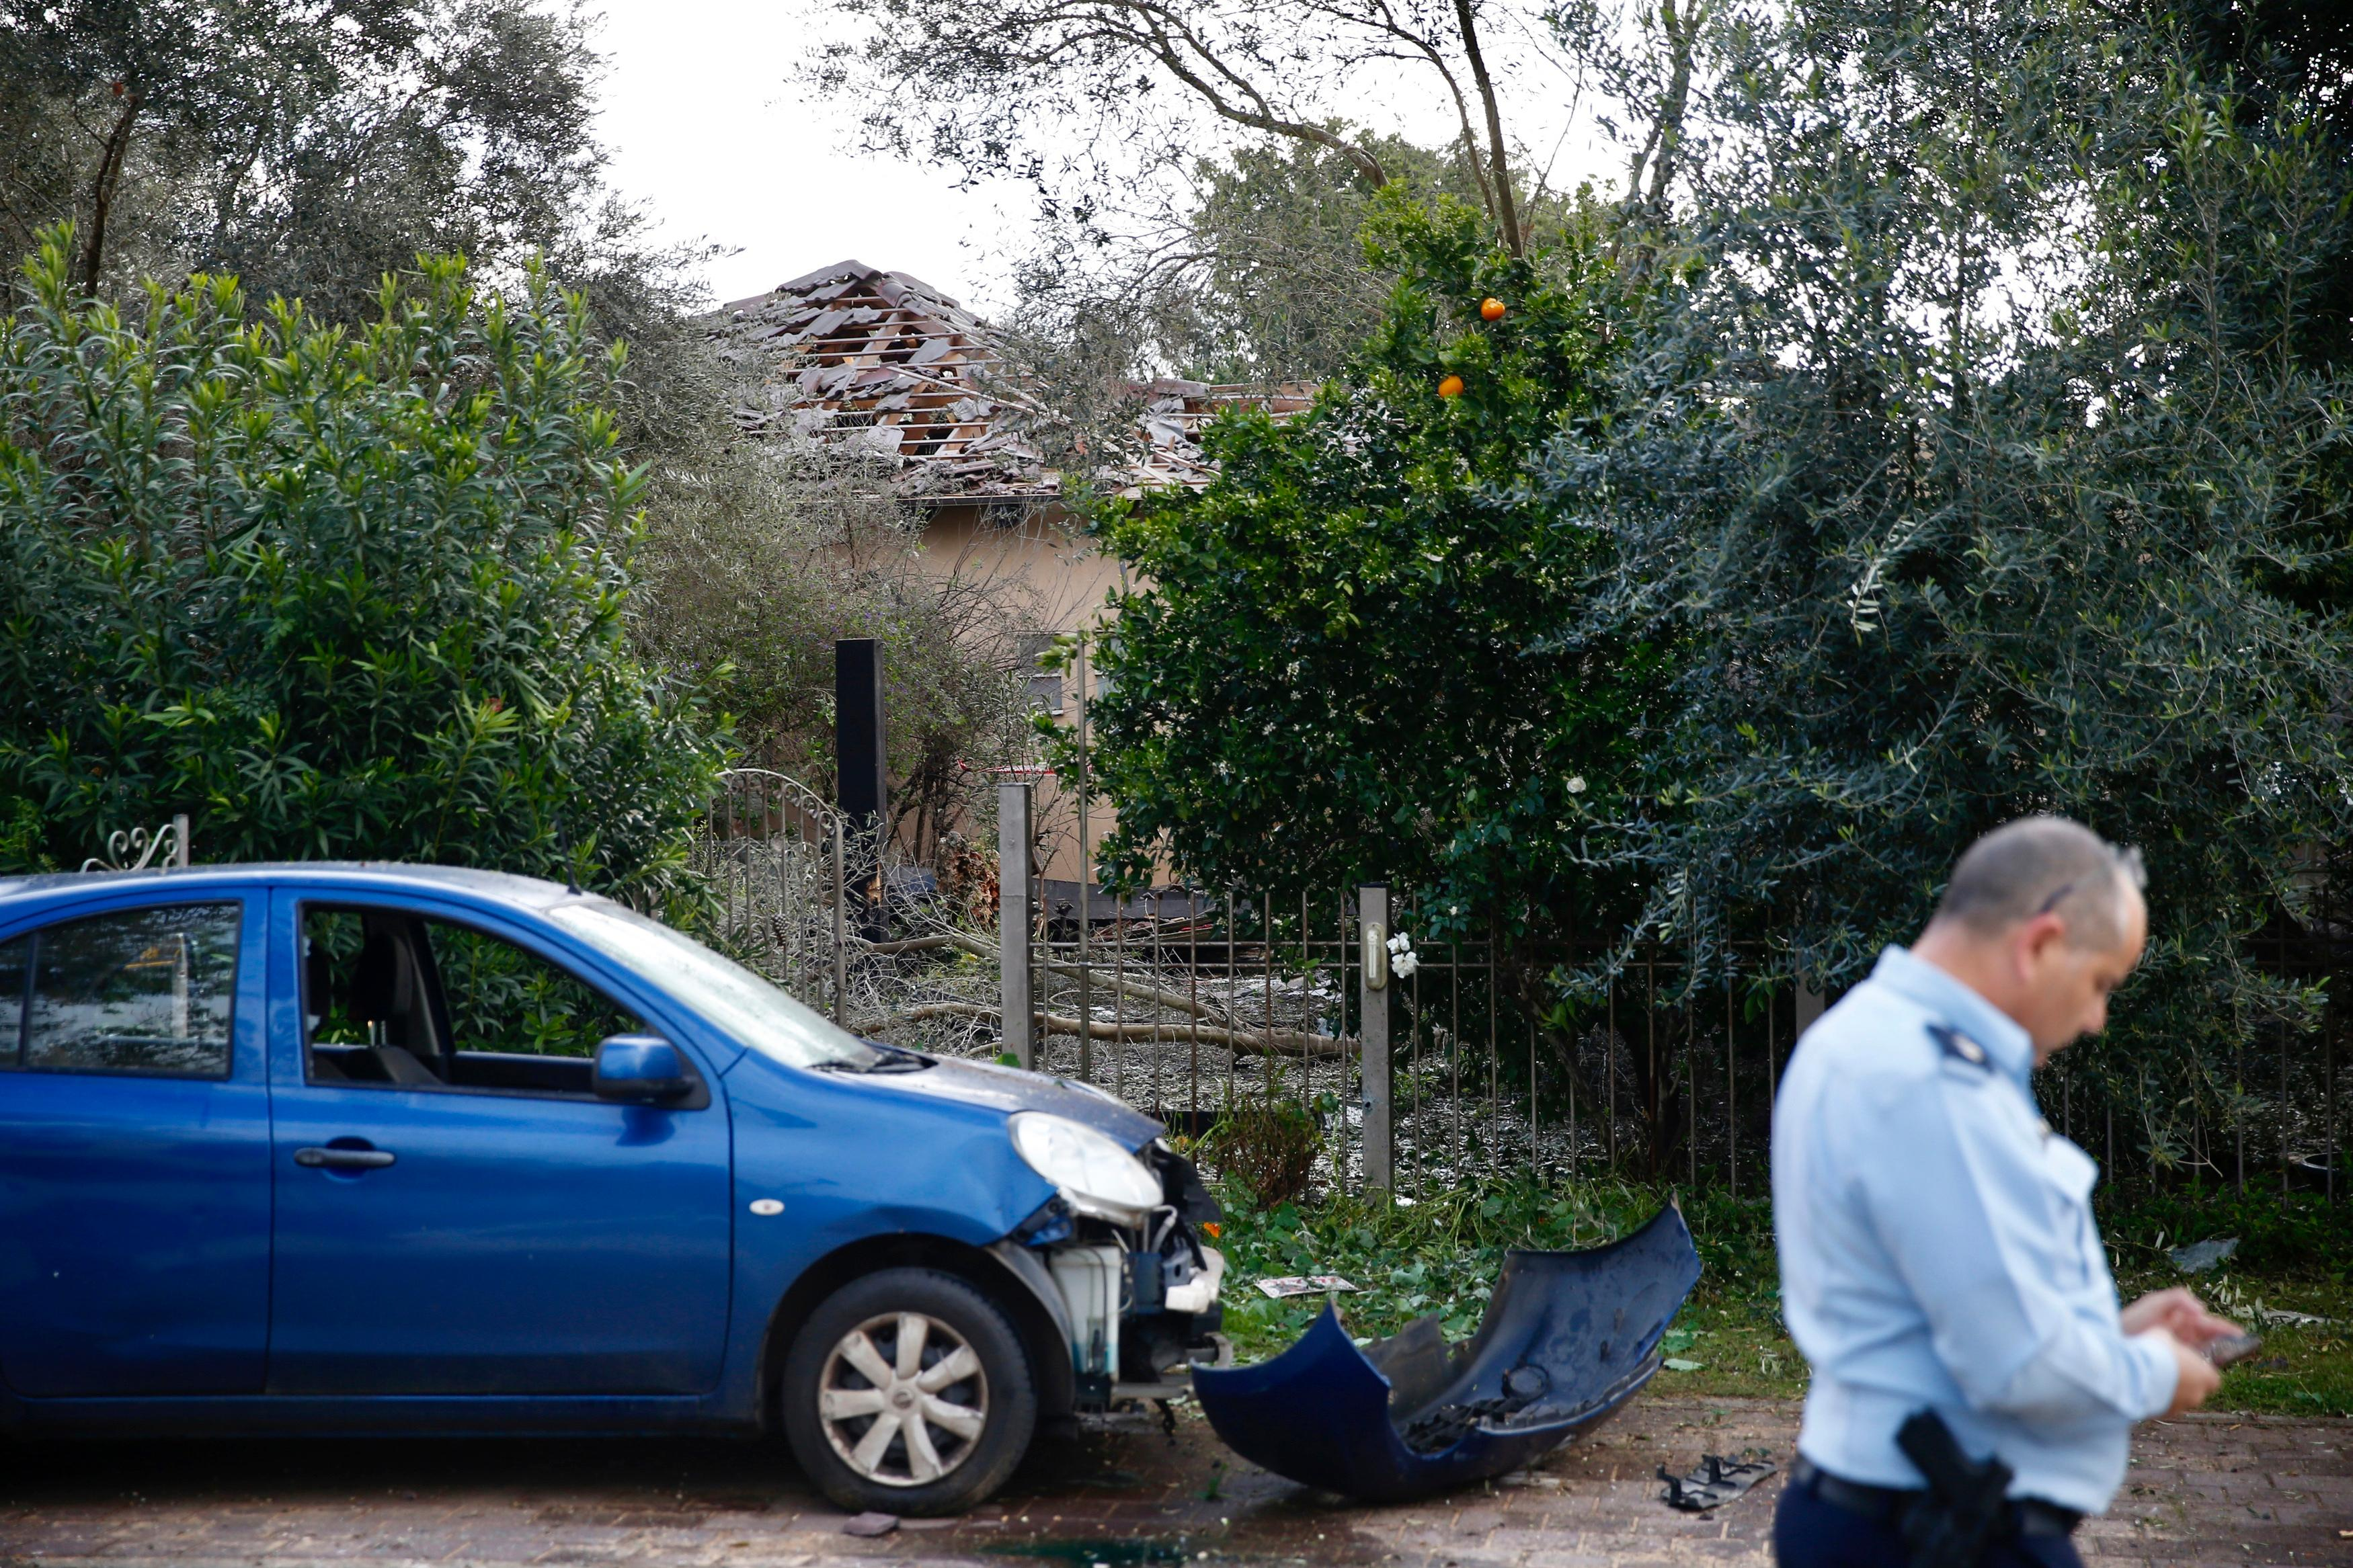 Damage to a house hit by a rocket is seen in Mishmeret, central Israel, Monday, March 25. (AP Photo/Ariel Schalit)